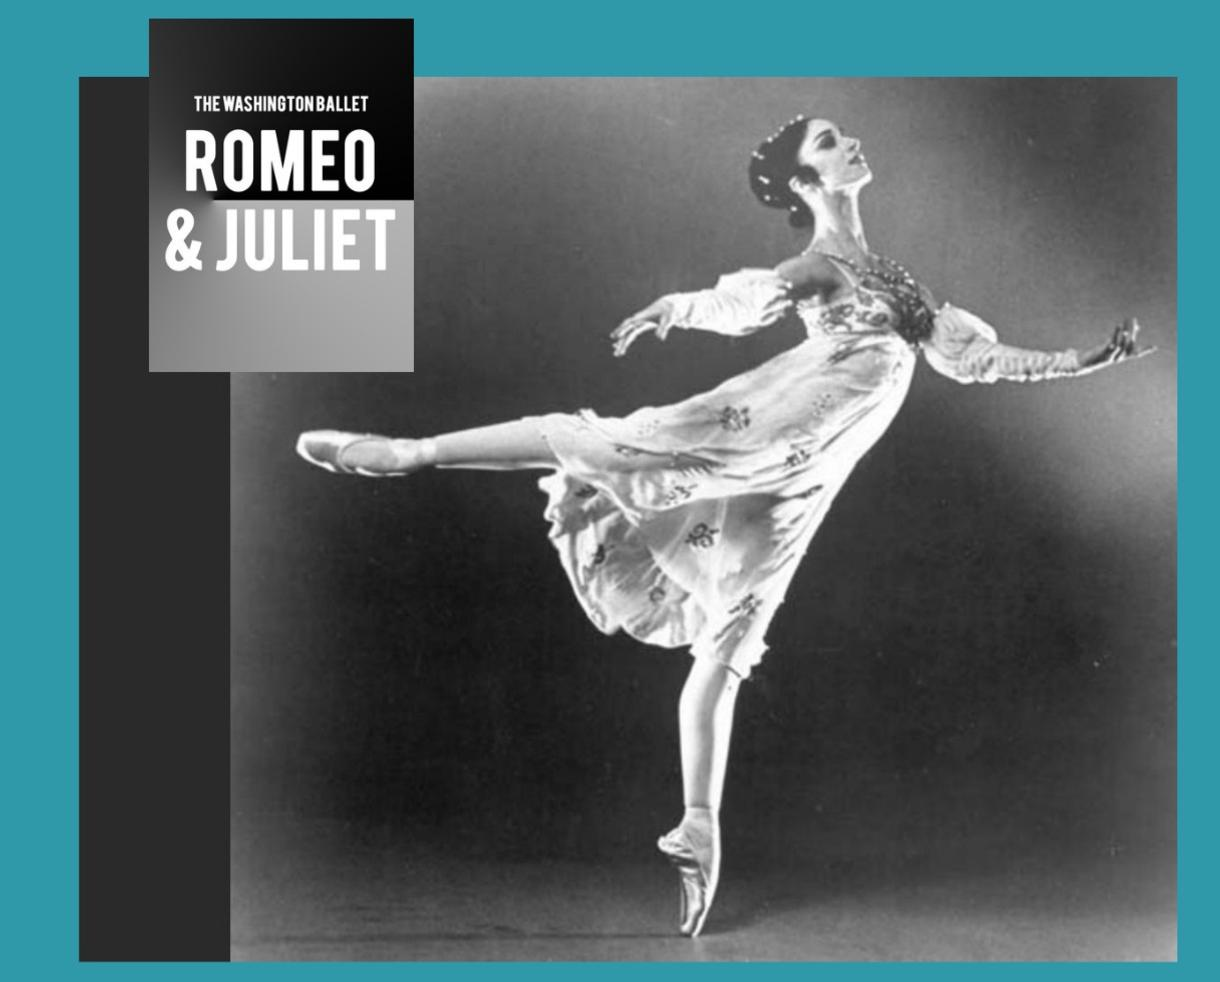 The Washington Ballet Presents Romeo and Juliet at The Kennedy Center Feb. 17-18, 2018 - Up to 35% Off Tickets!